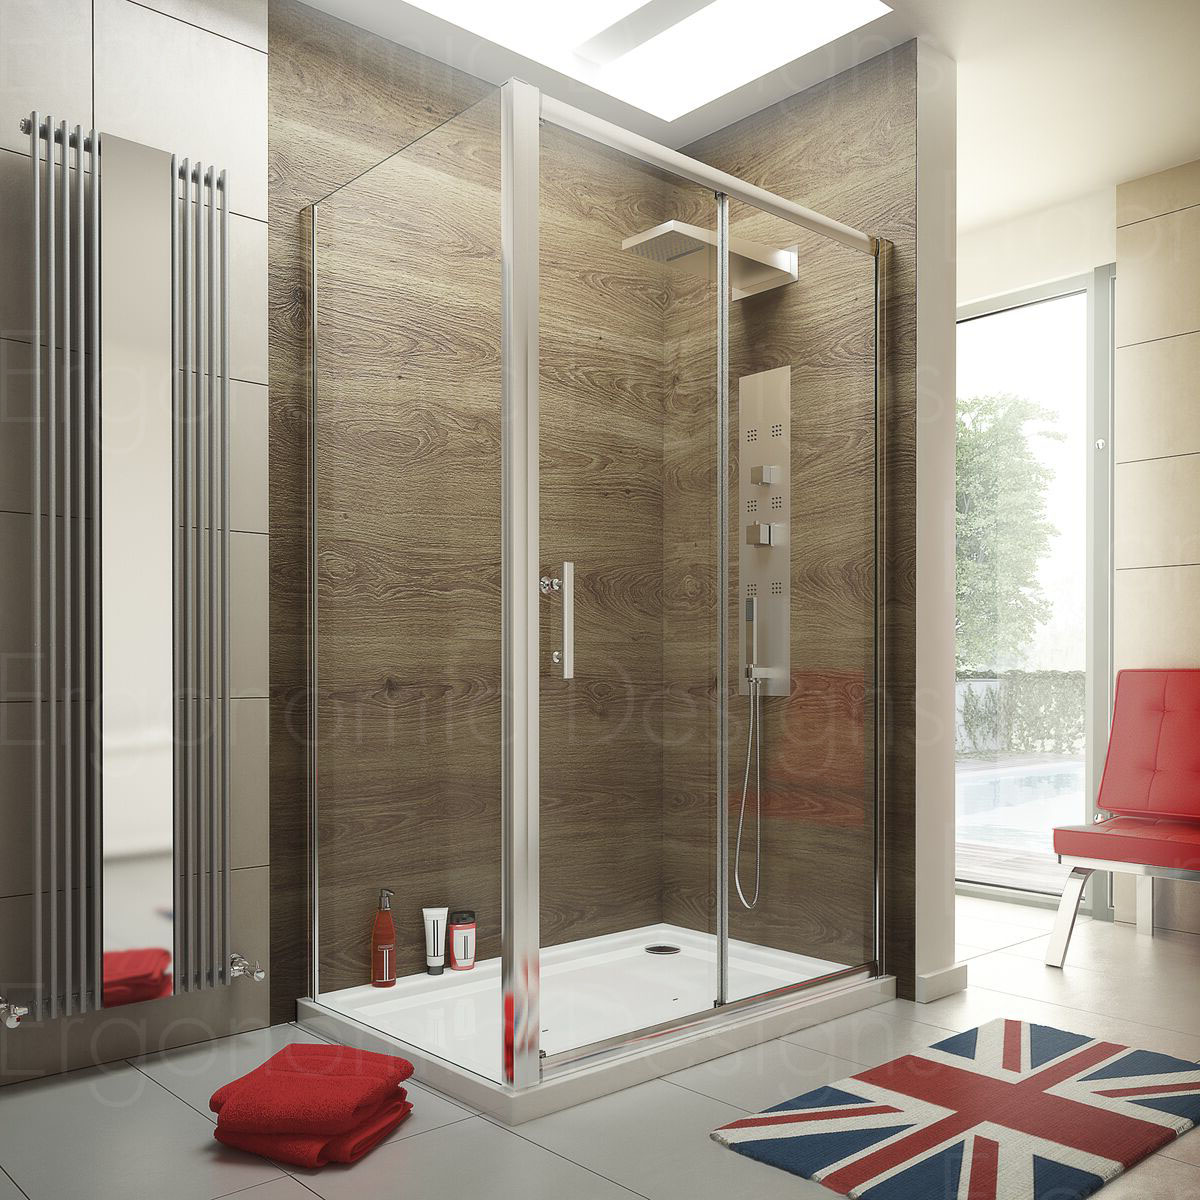 1200 x 800 Sliding Door Shower Enclosure Glass Cubicle with Stone ...